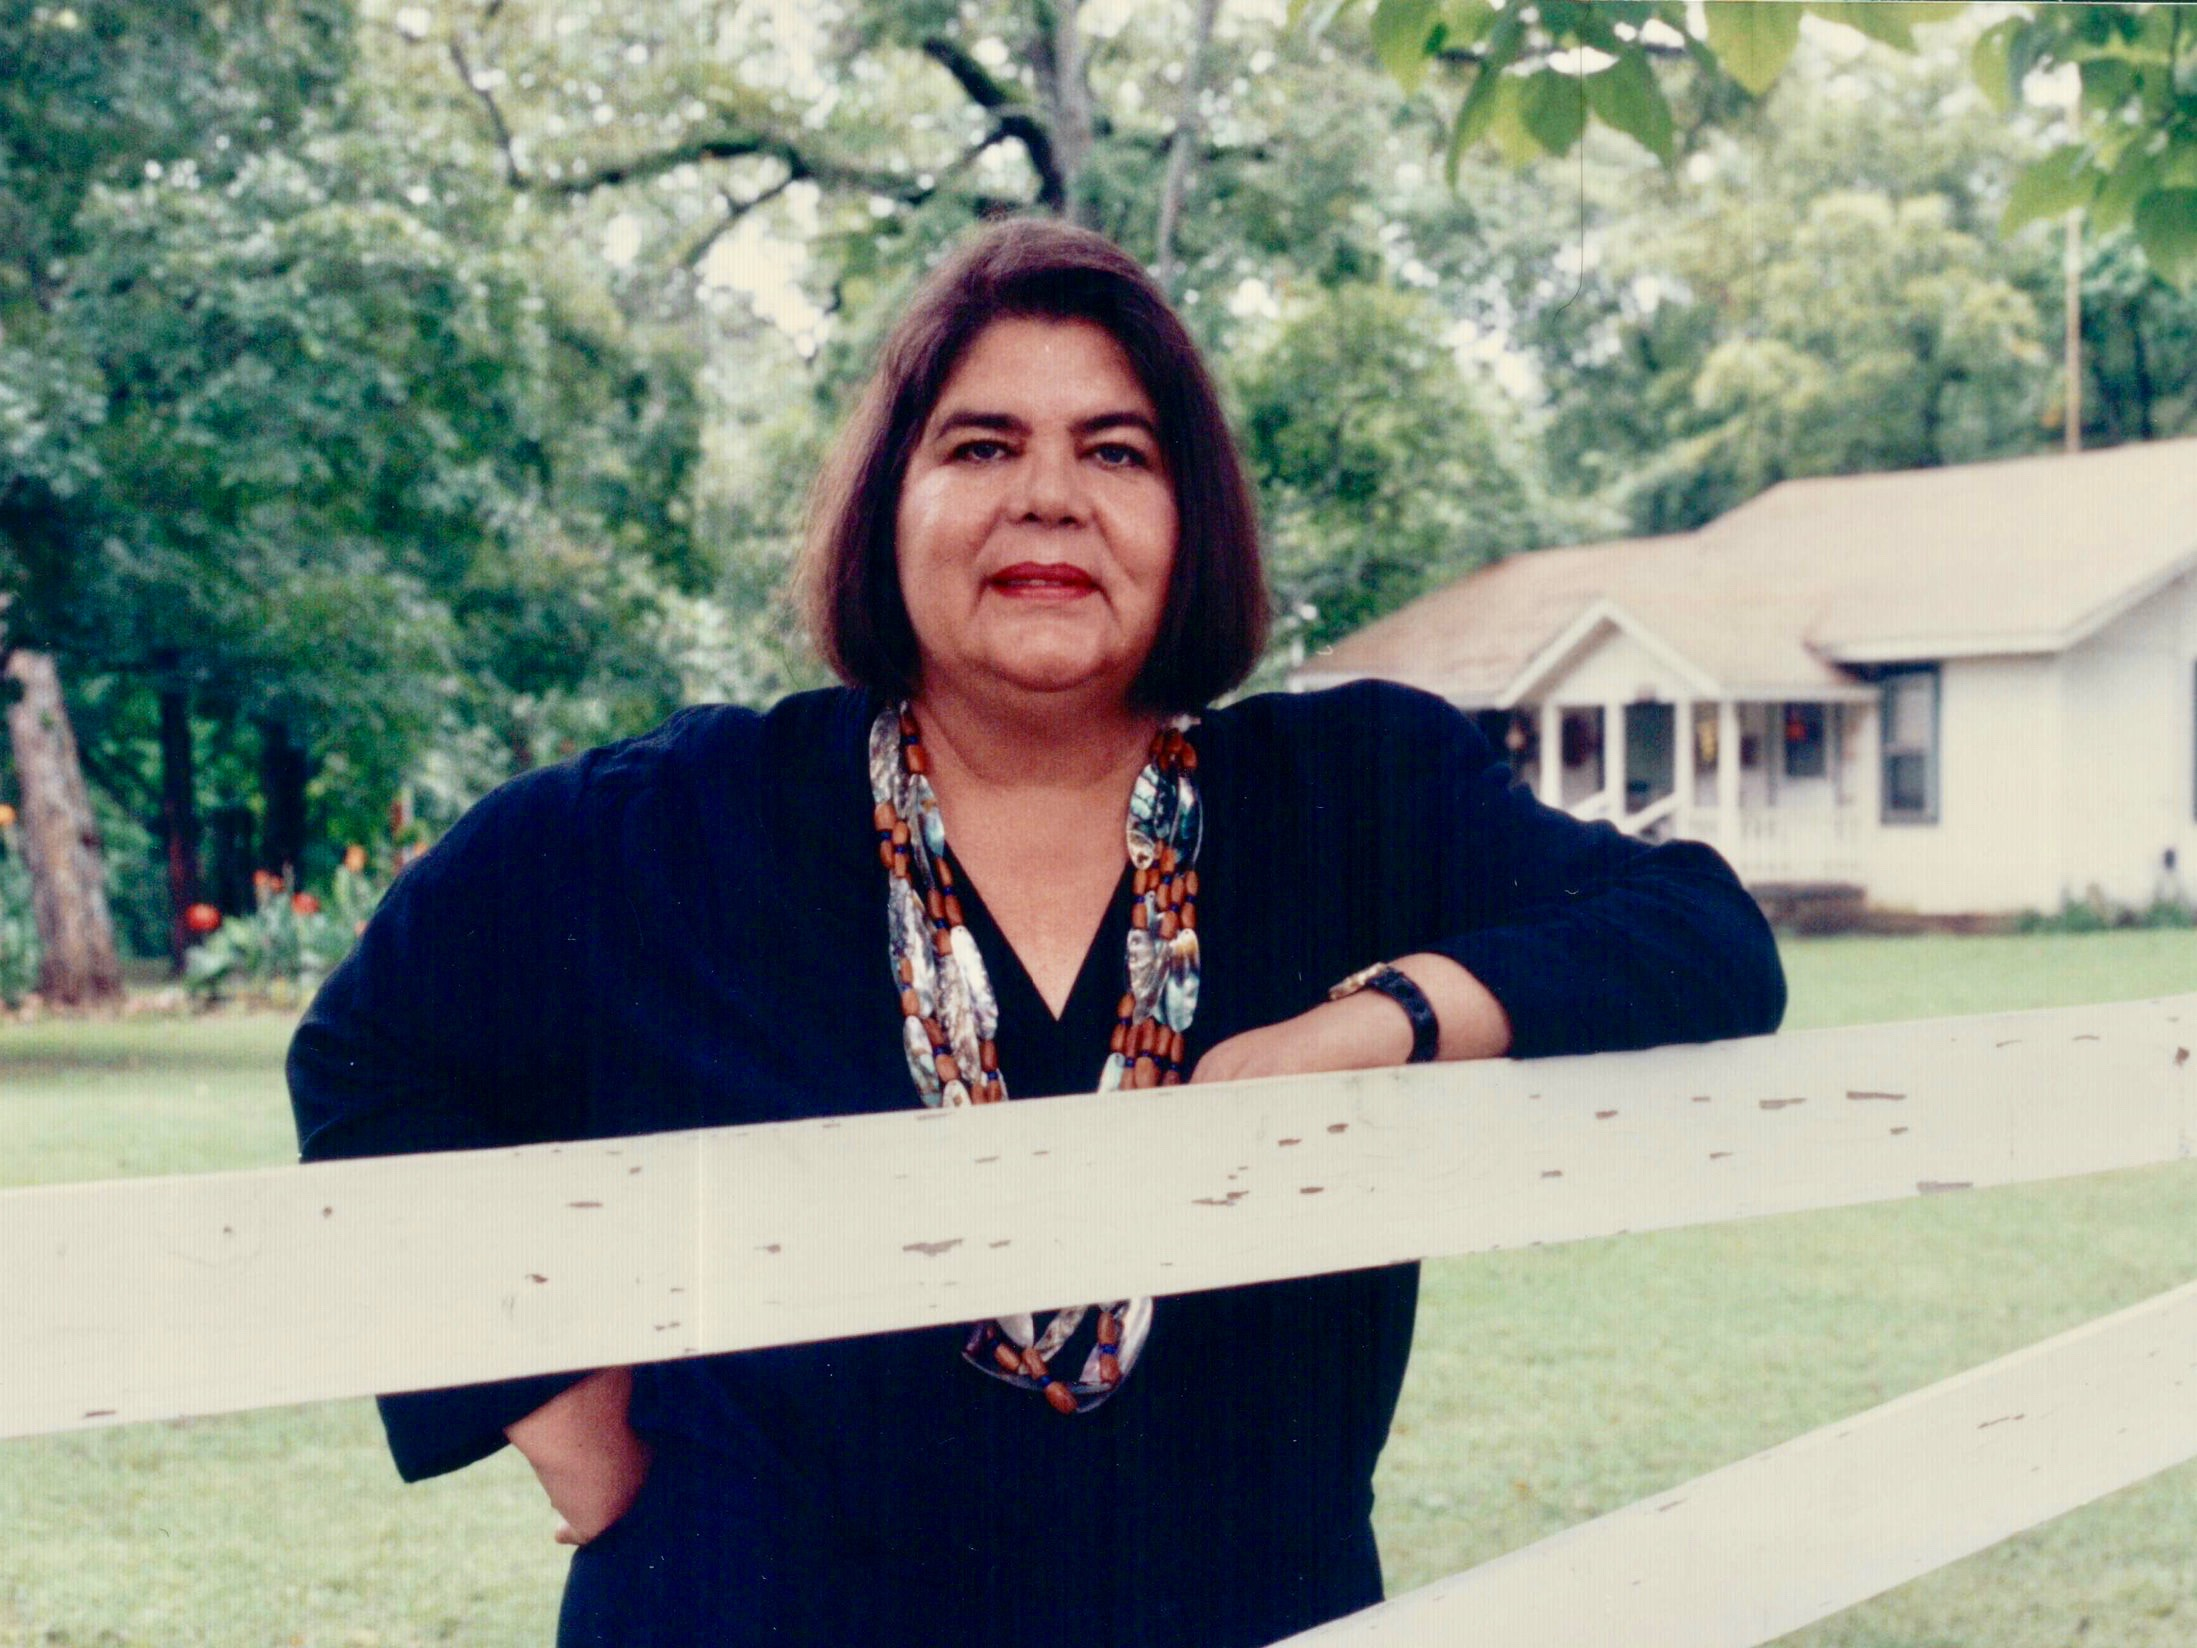 Wilma Mankiller documentary set for world premiere in Los Angeles